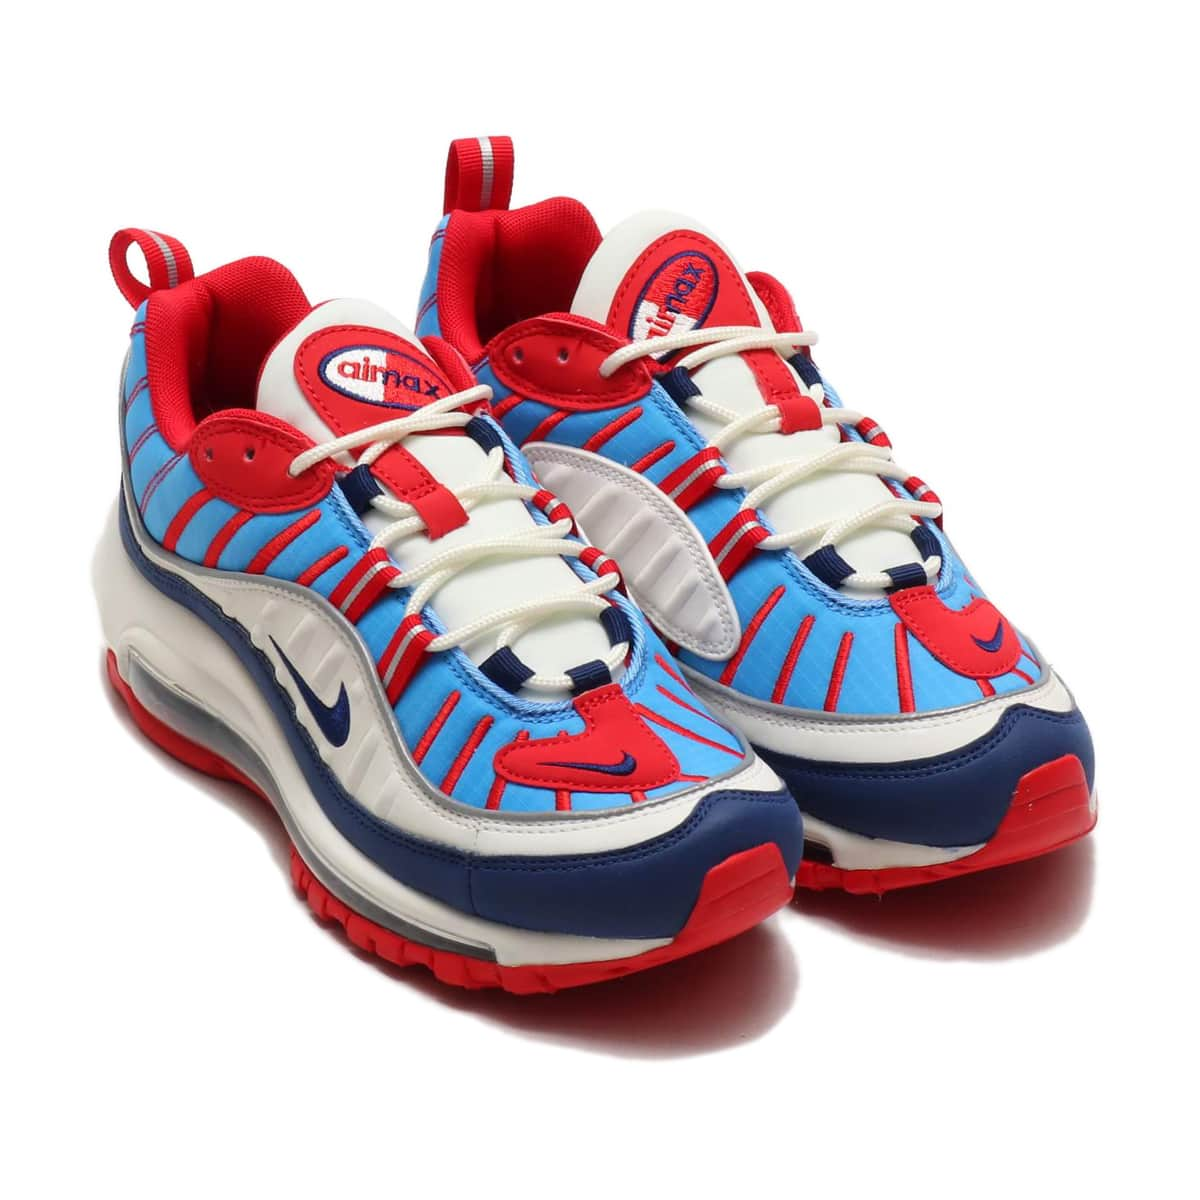 NIKE W AIR MAX 98 SMMT WHT/BL VD-UNV RD-RFLCT SL 19SU-I_photo_large